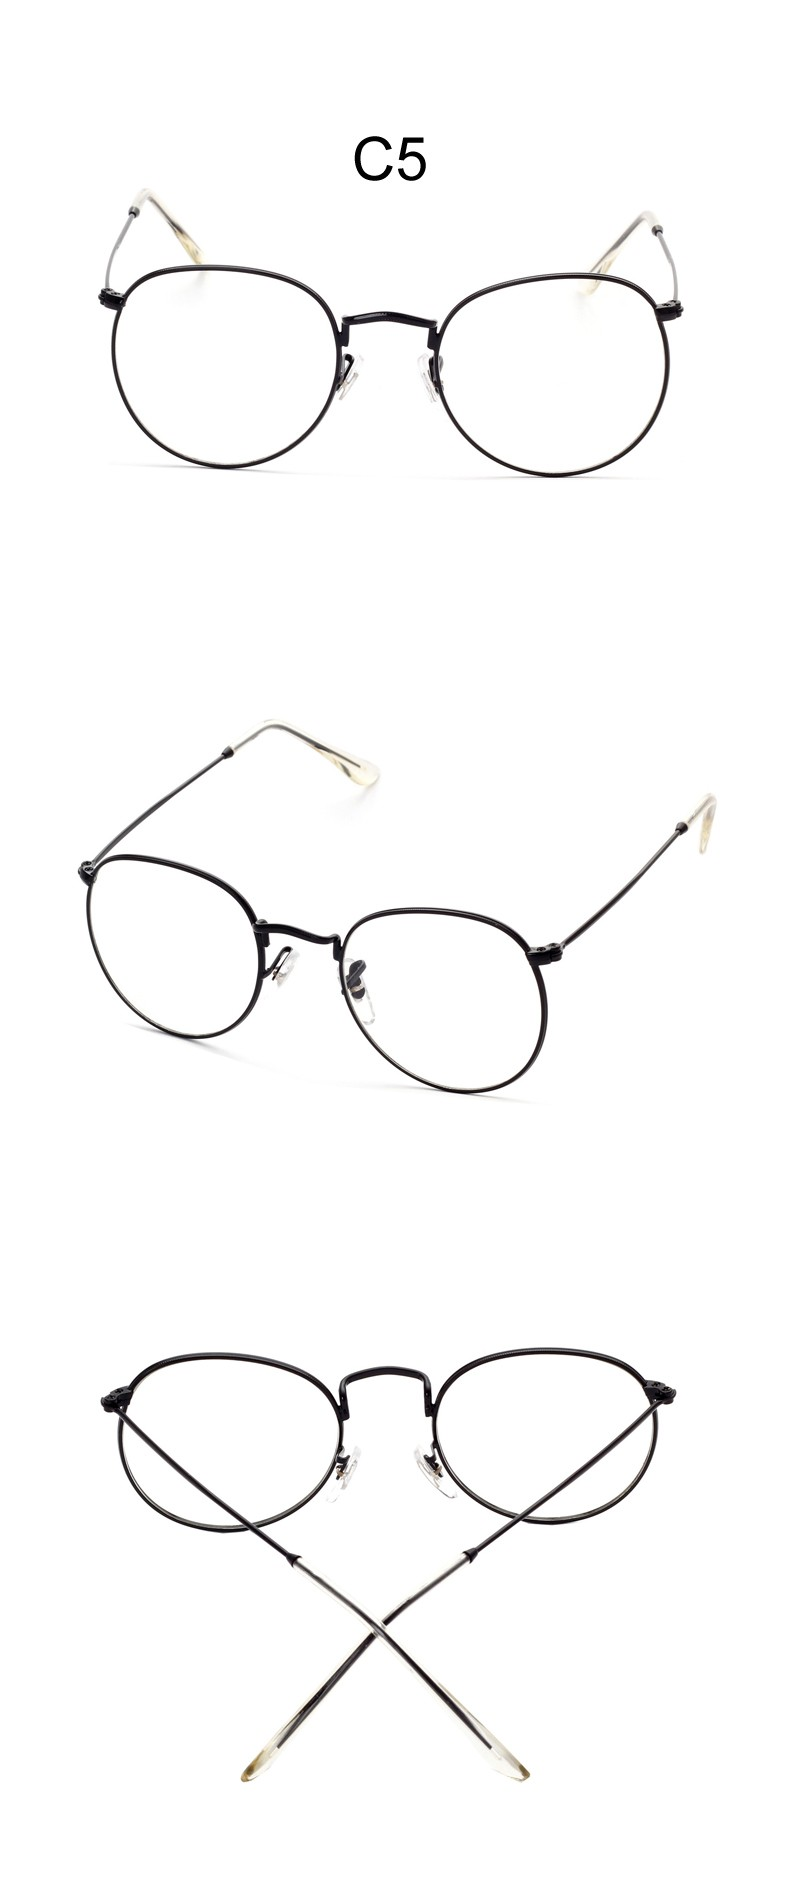 Fashion Round Metal Frame Eyeglasses For Women Men Vintage Glasses With Clear Lens Optical Frames oculos de grau feminino CC5039